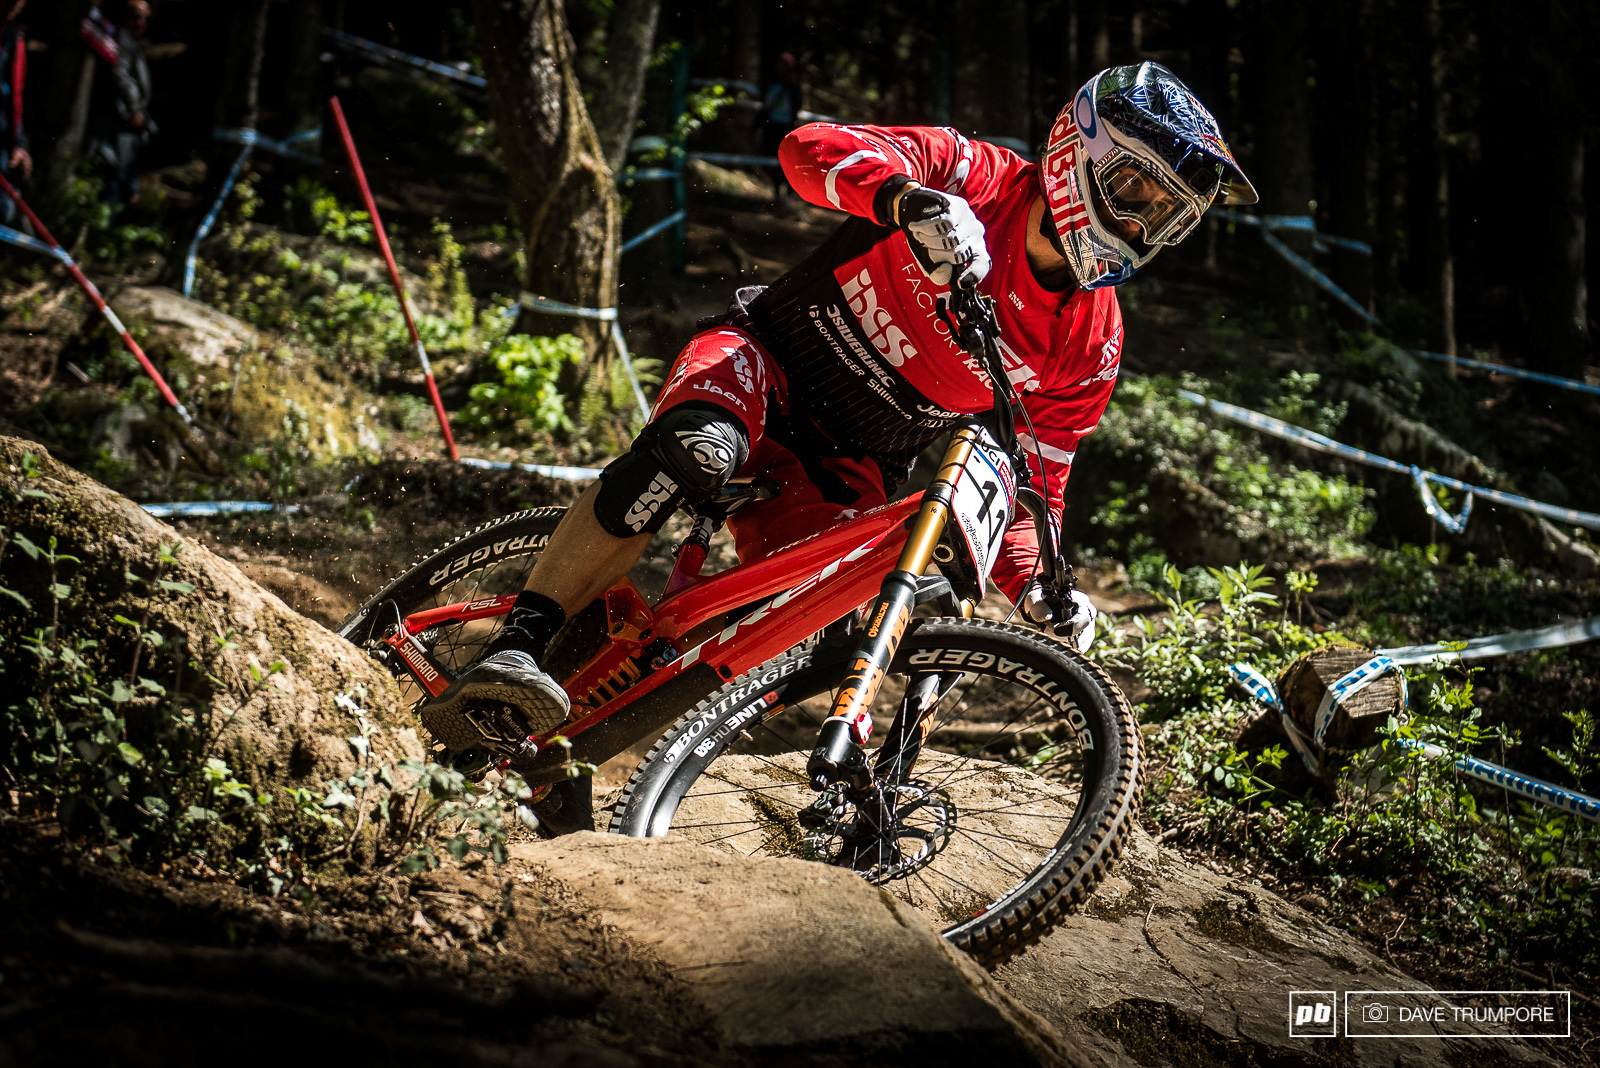 Gee Atherton was looking steady all day and would take the top time in the afternoon s timed session.